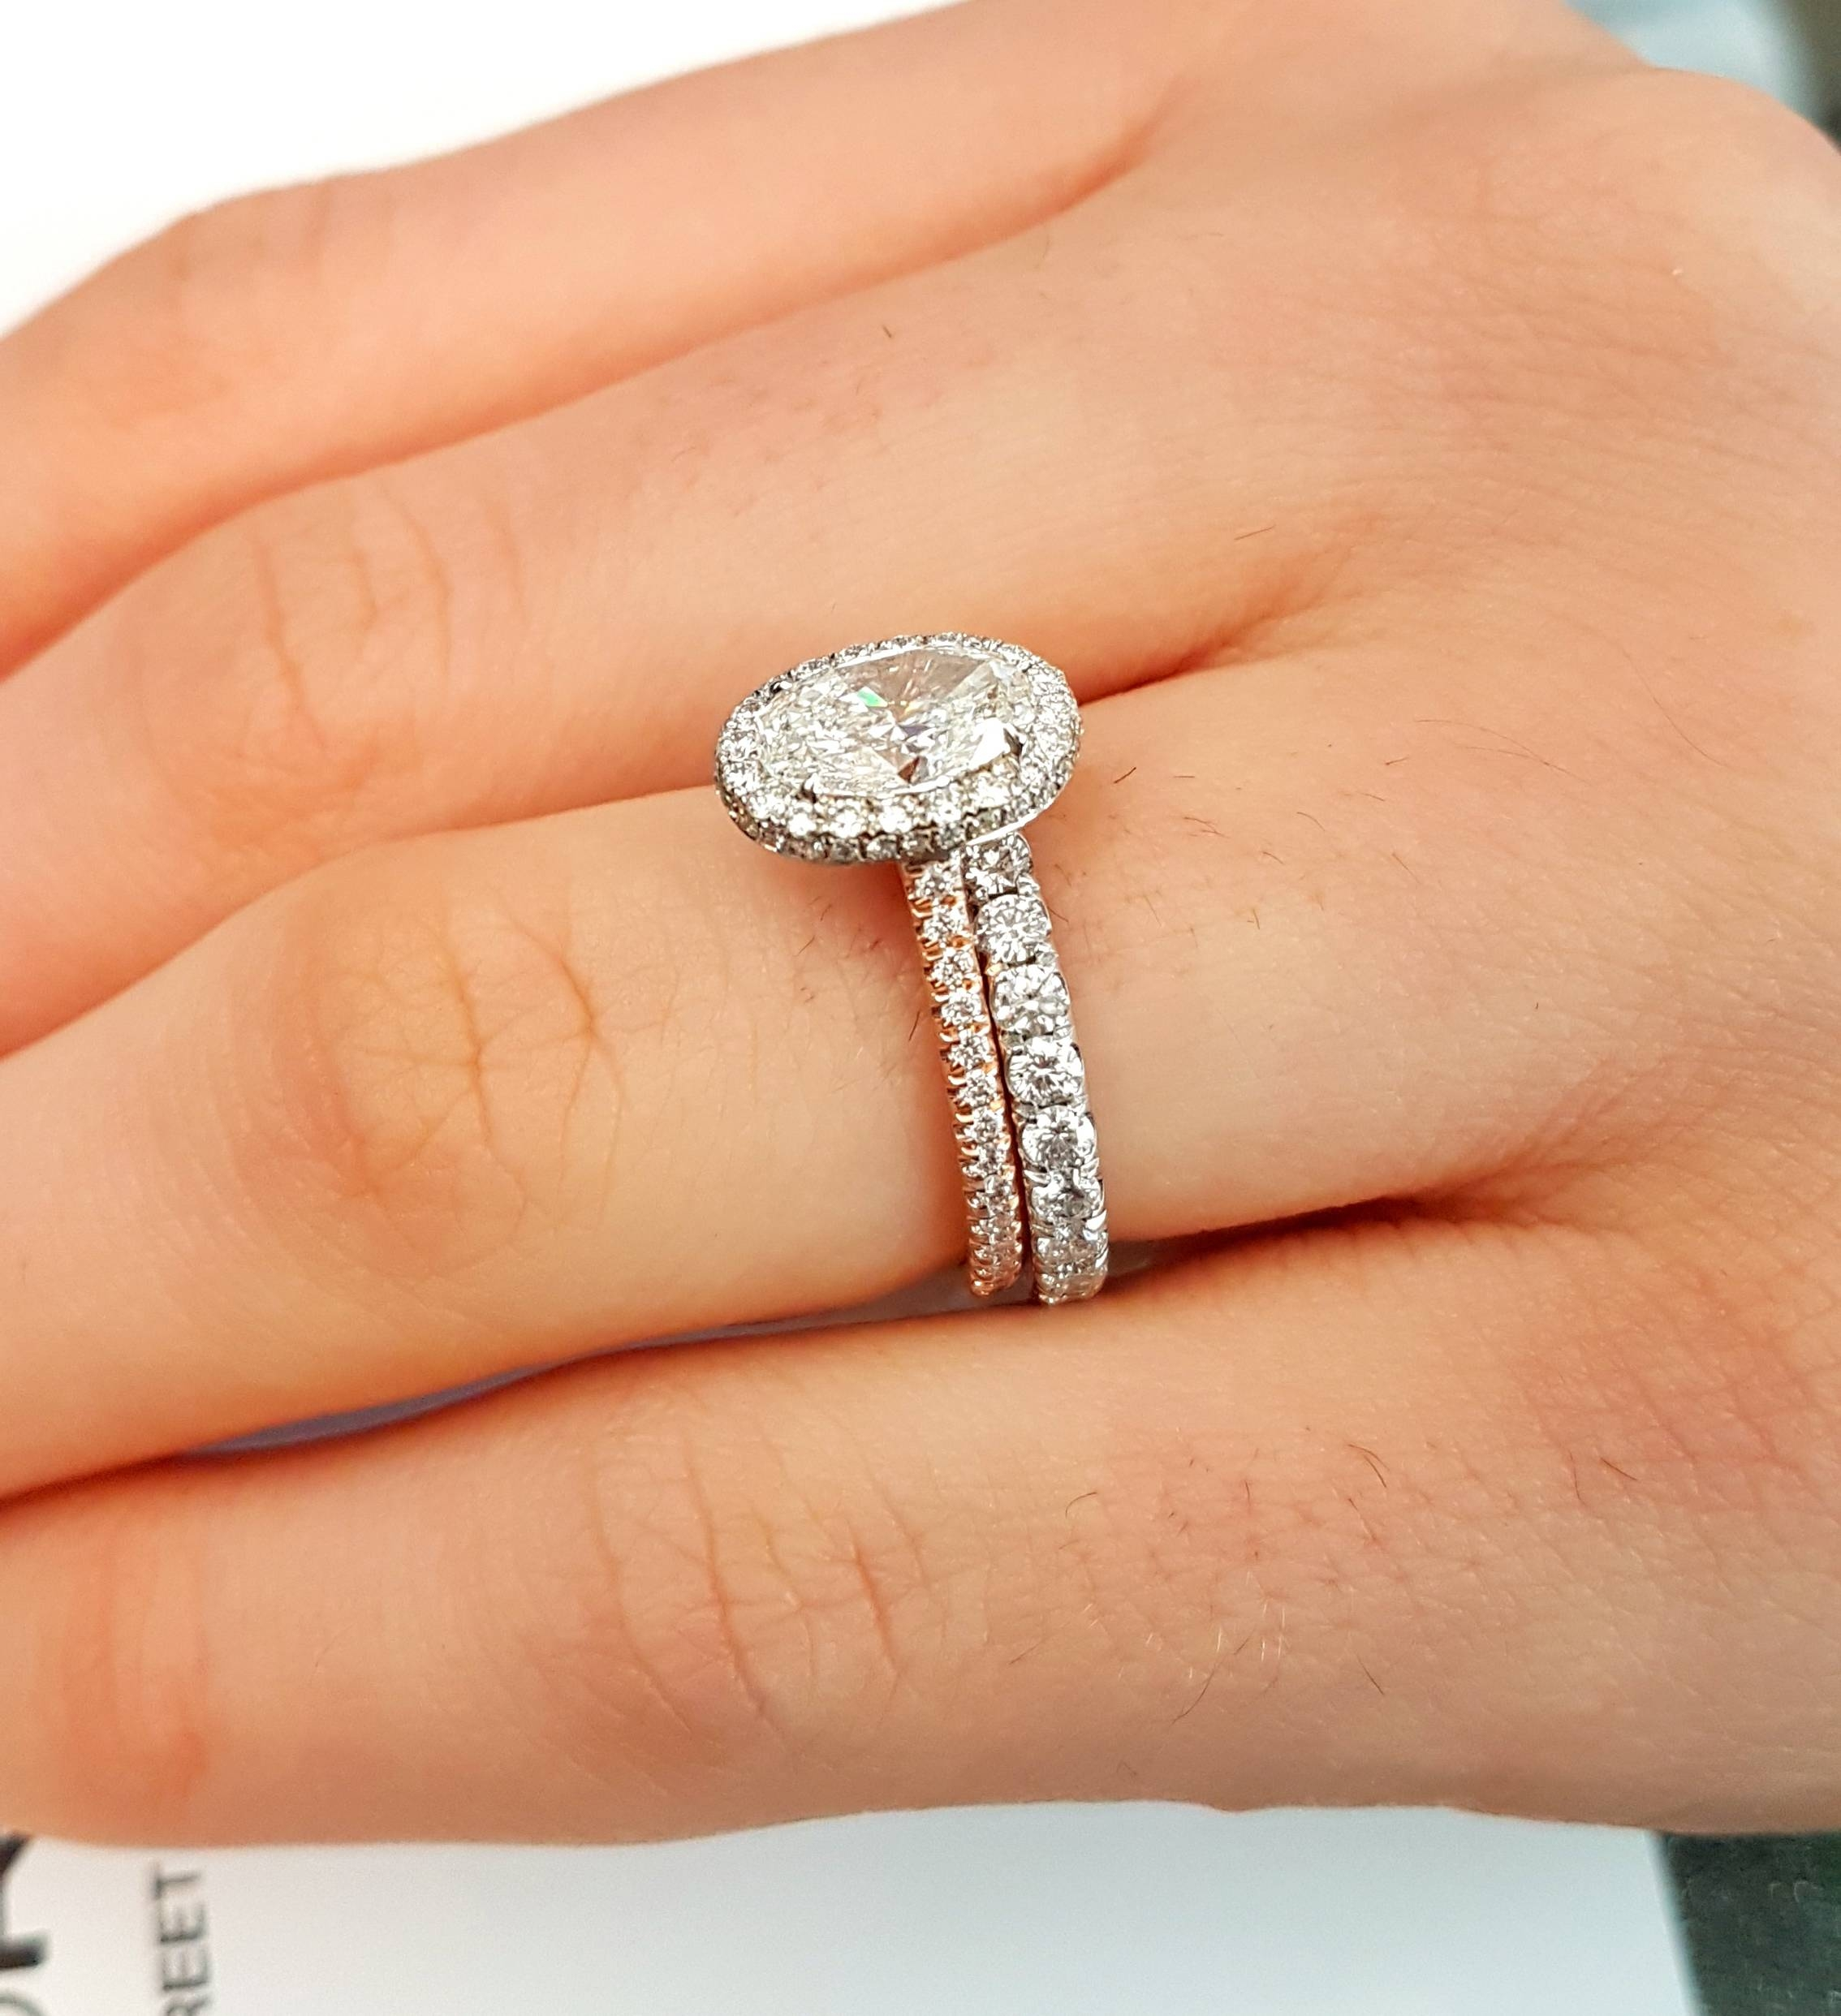 Mixing And Matching Wedding Bands / Blog Within Engagement And Wedding Bands (View 9 of 15)